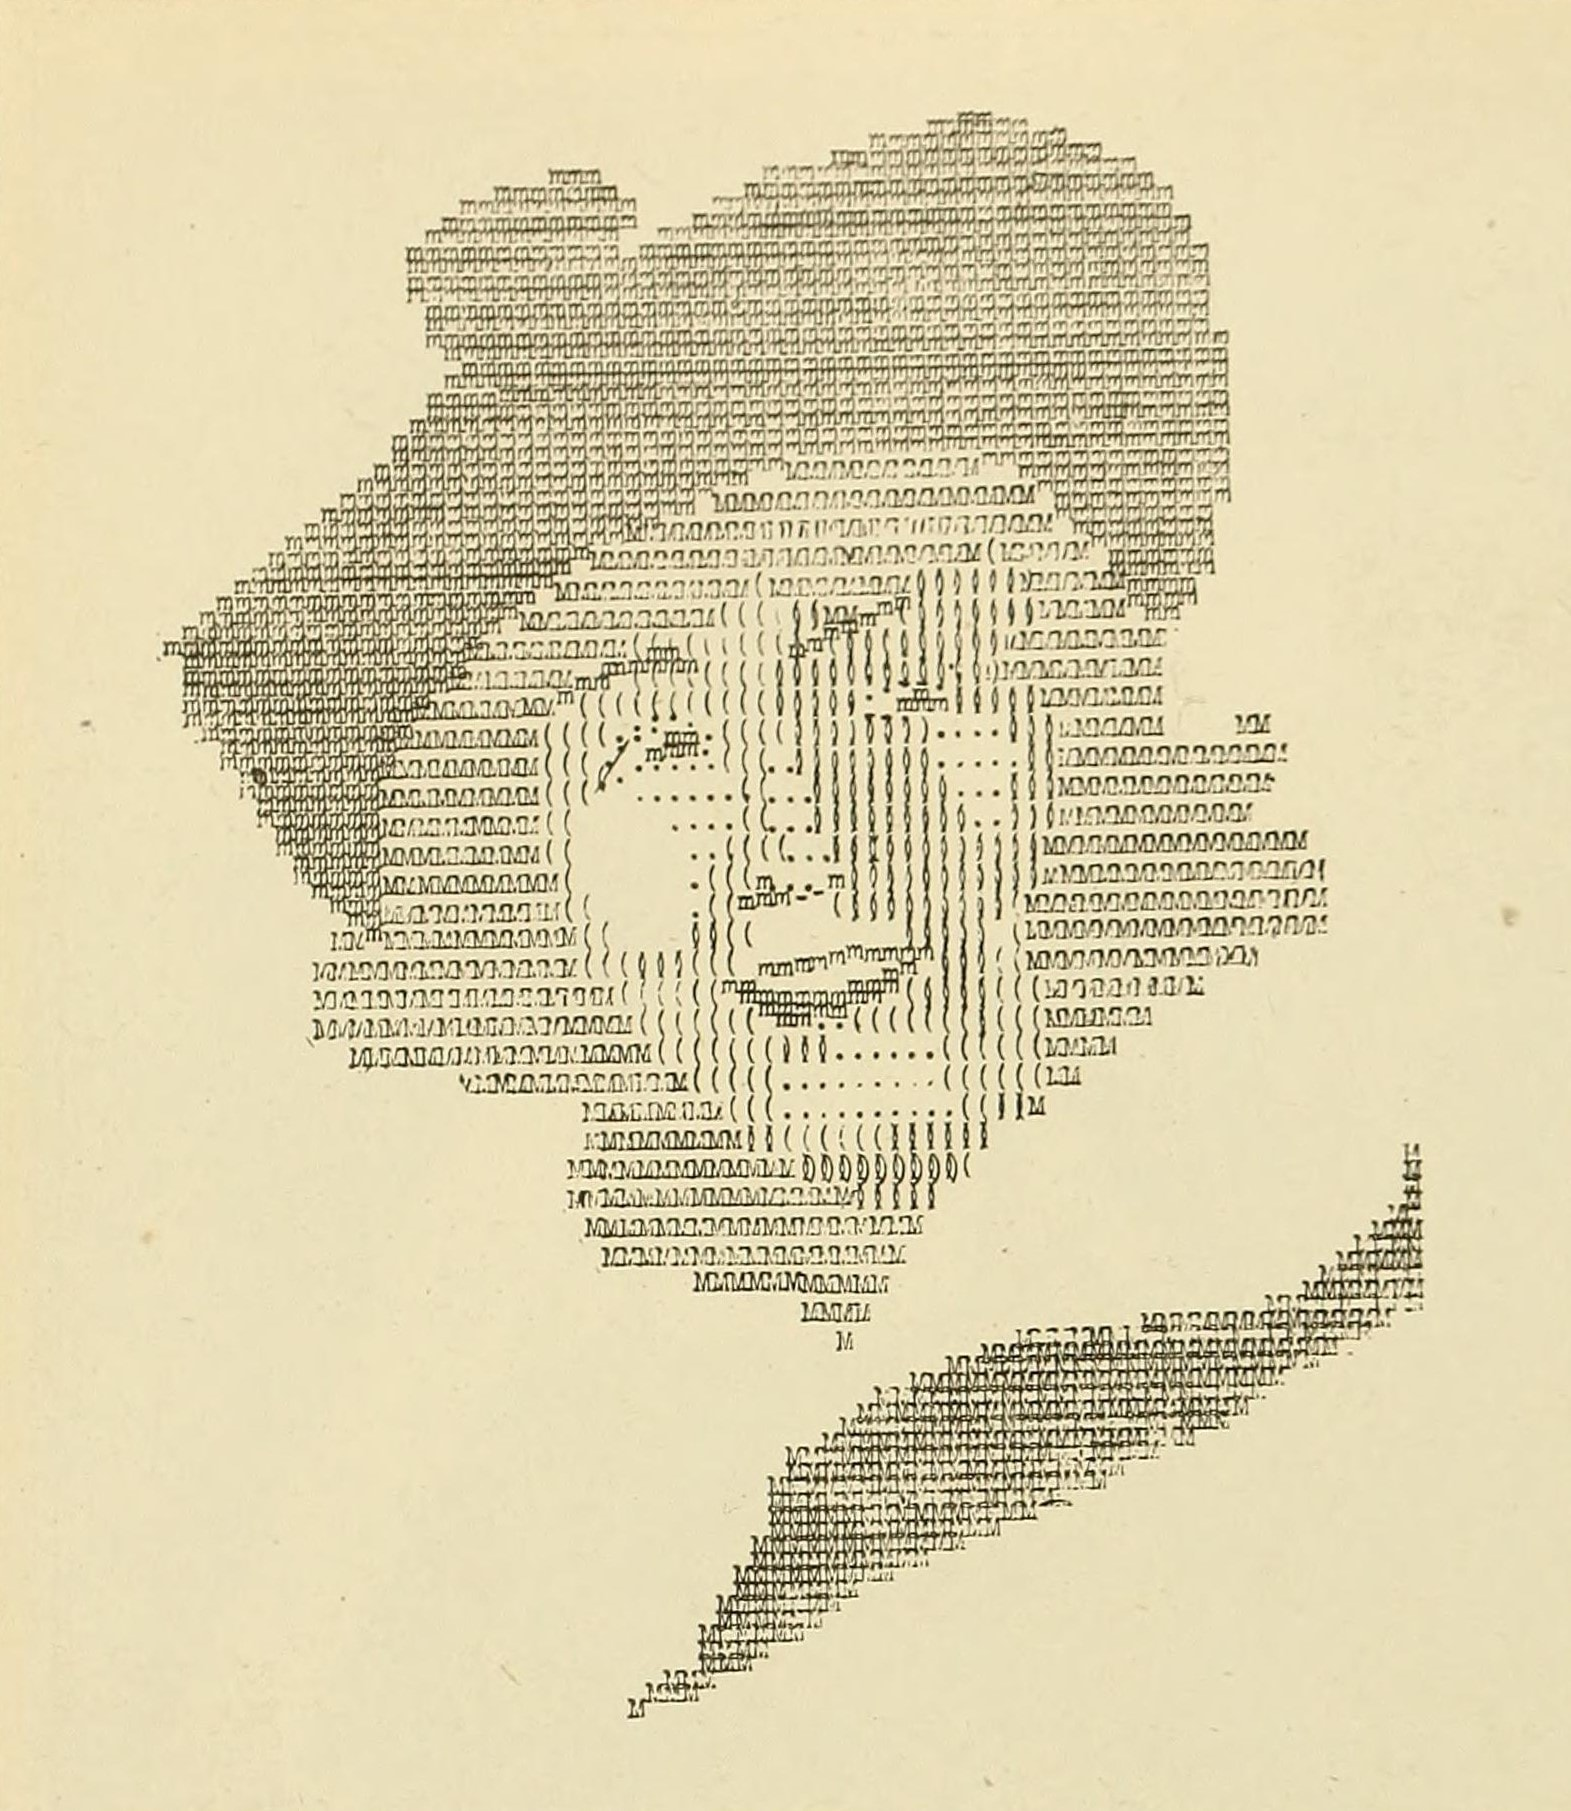 Typewritten portrait of Dorothy Gish